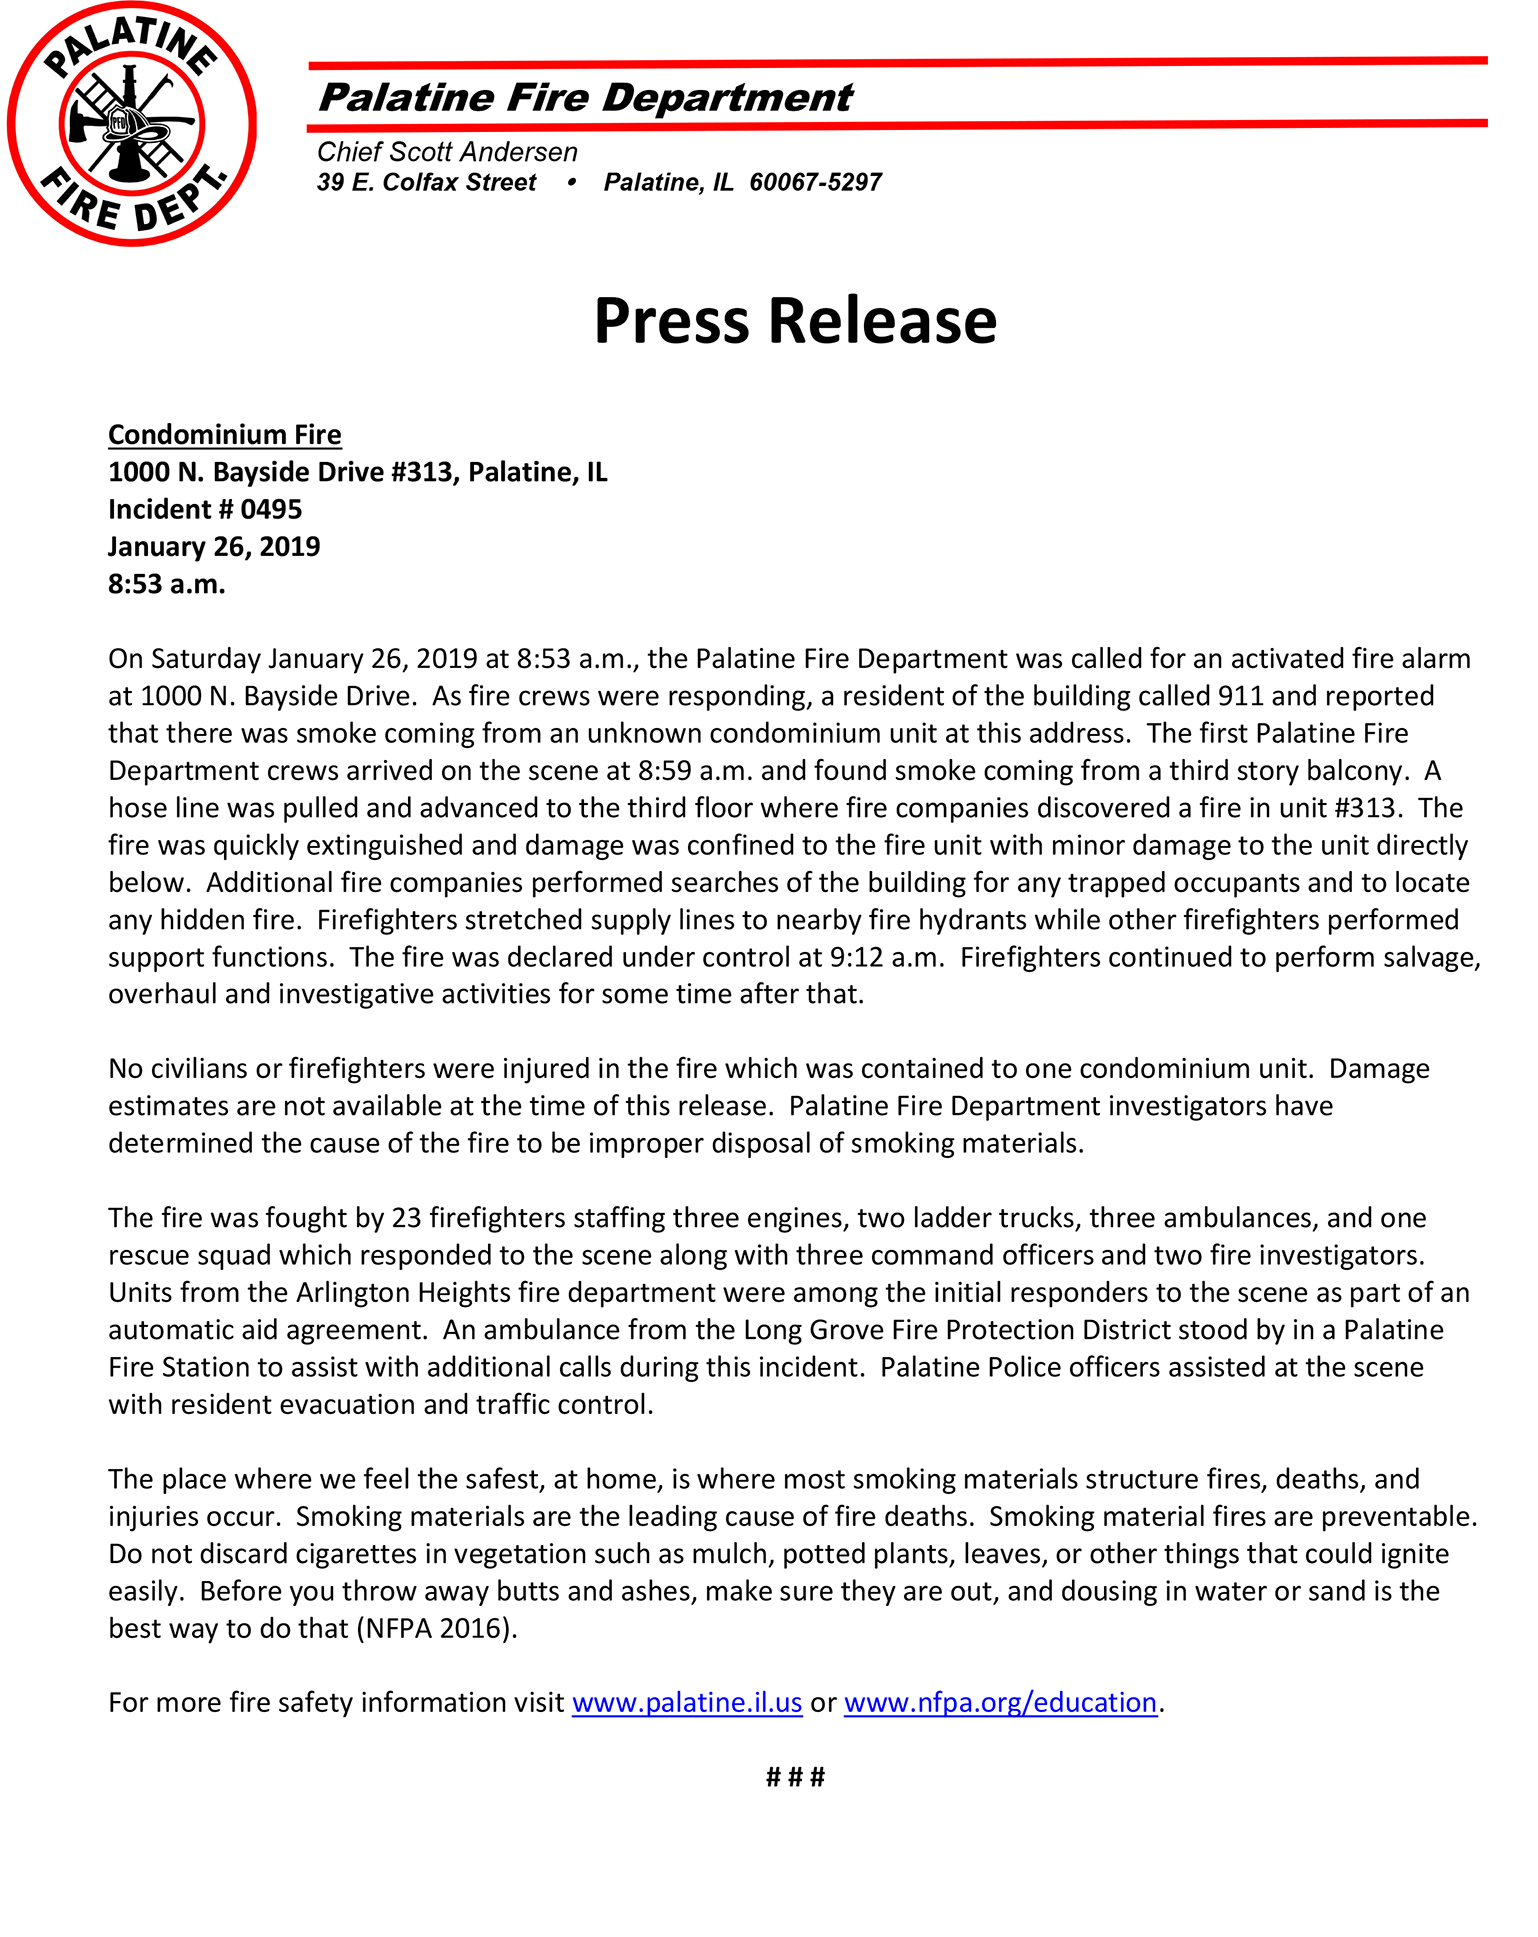 Palatine FD press release - apartment fire 1/26/19